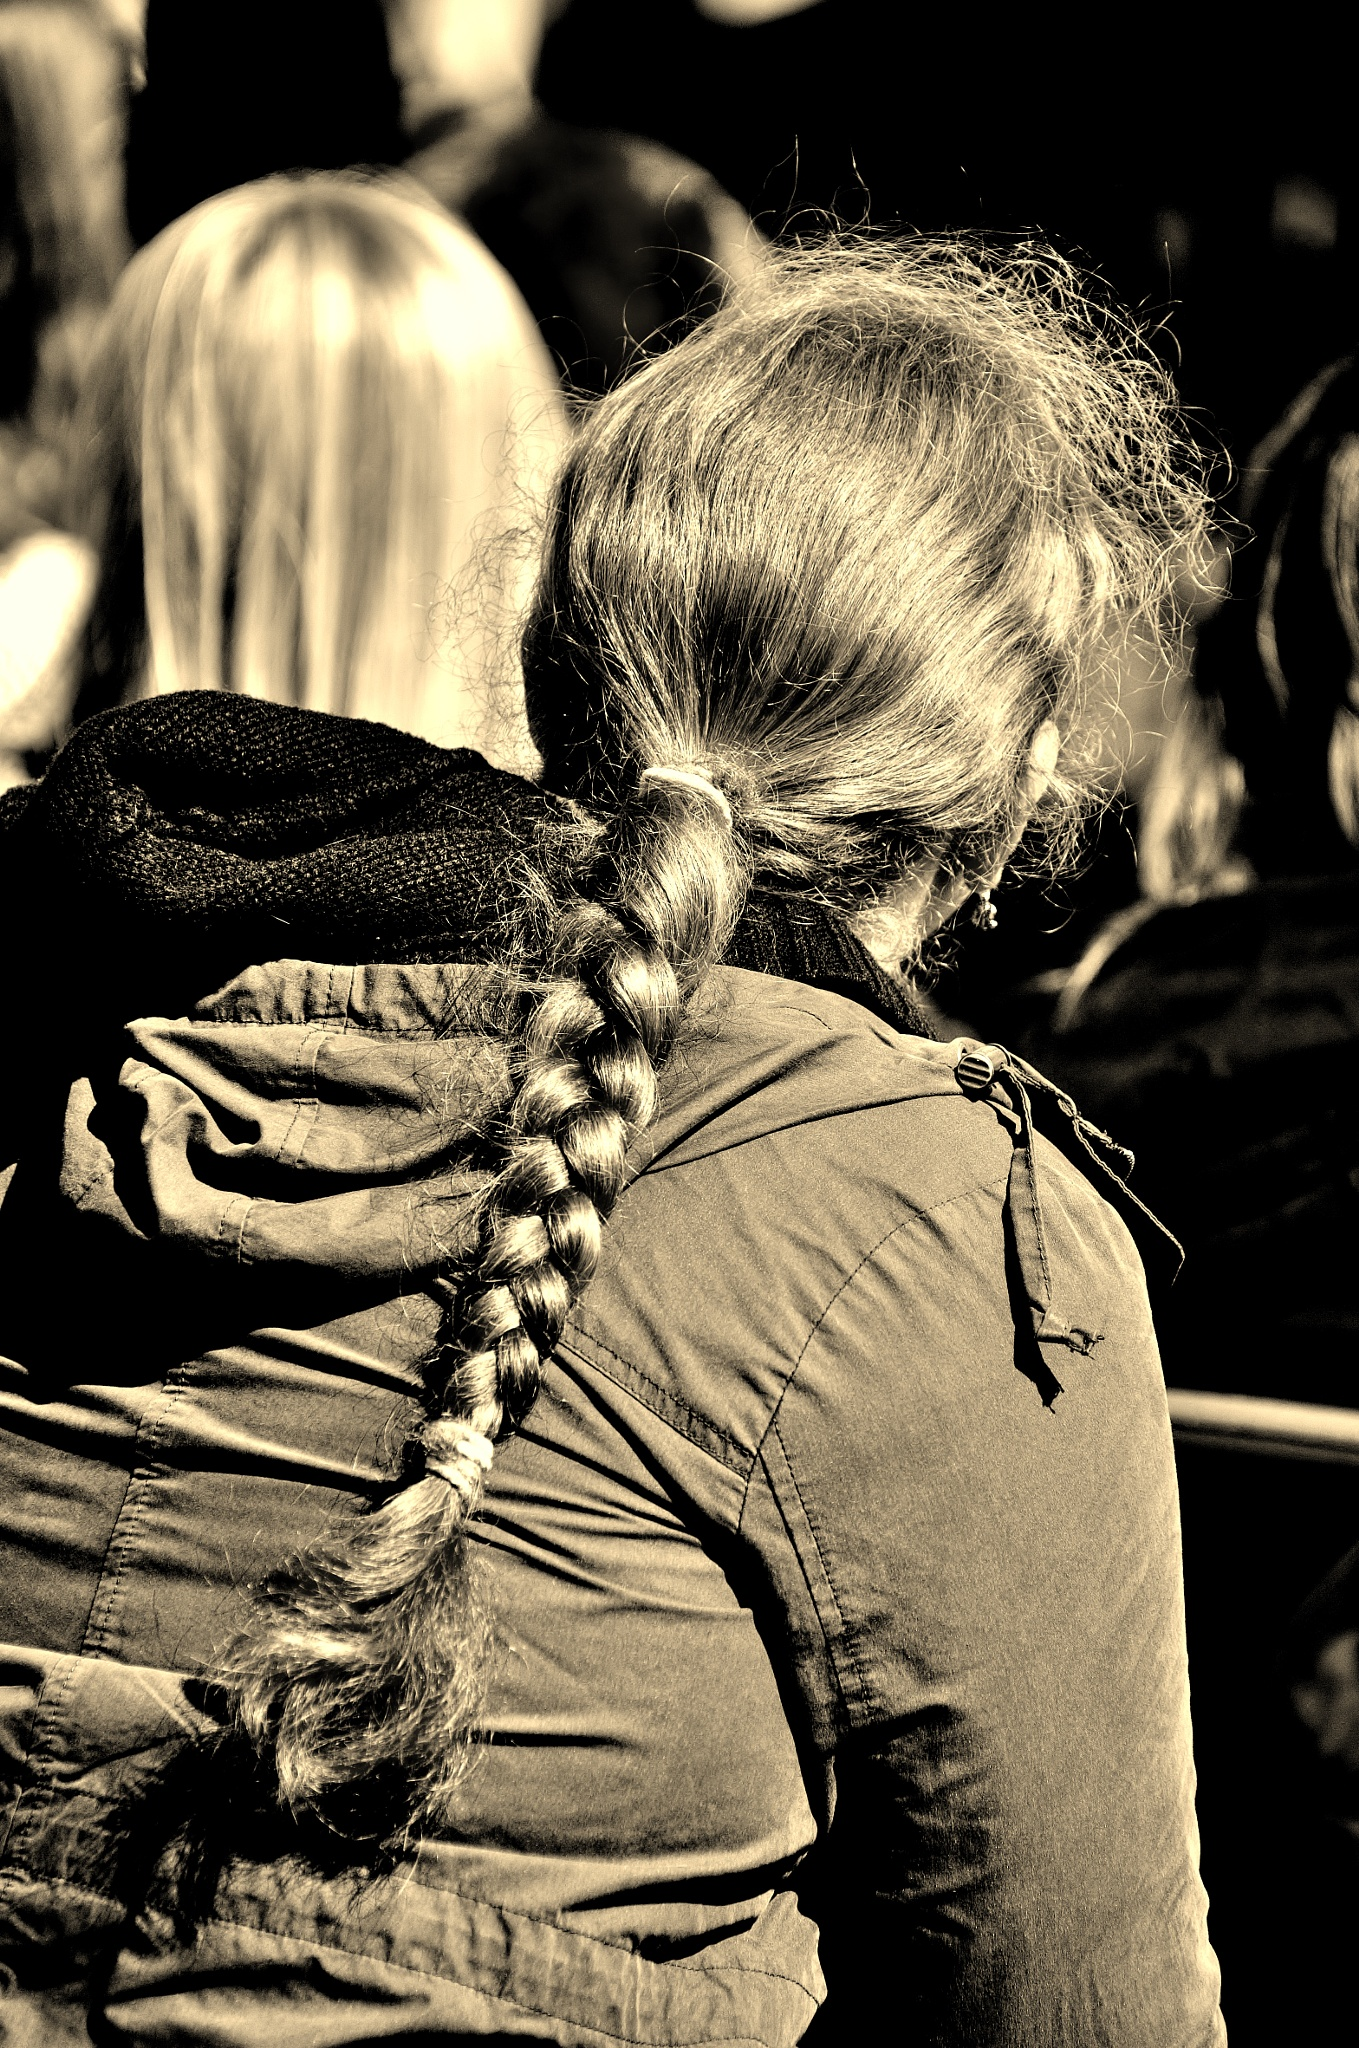 Red Hair In The Sun - Sepia by paul.hosker